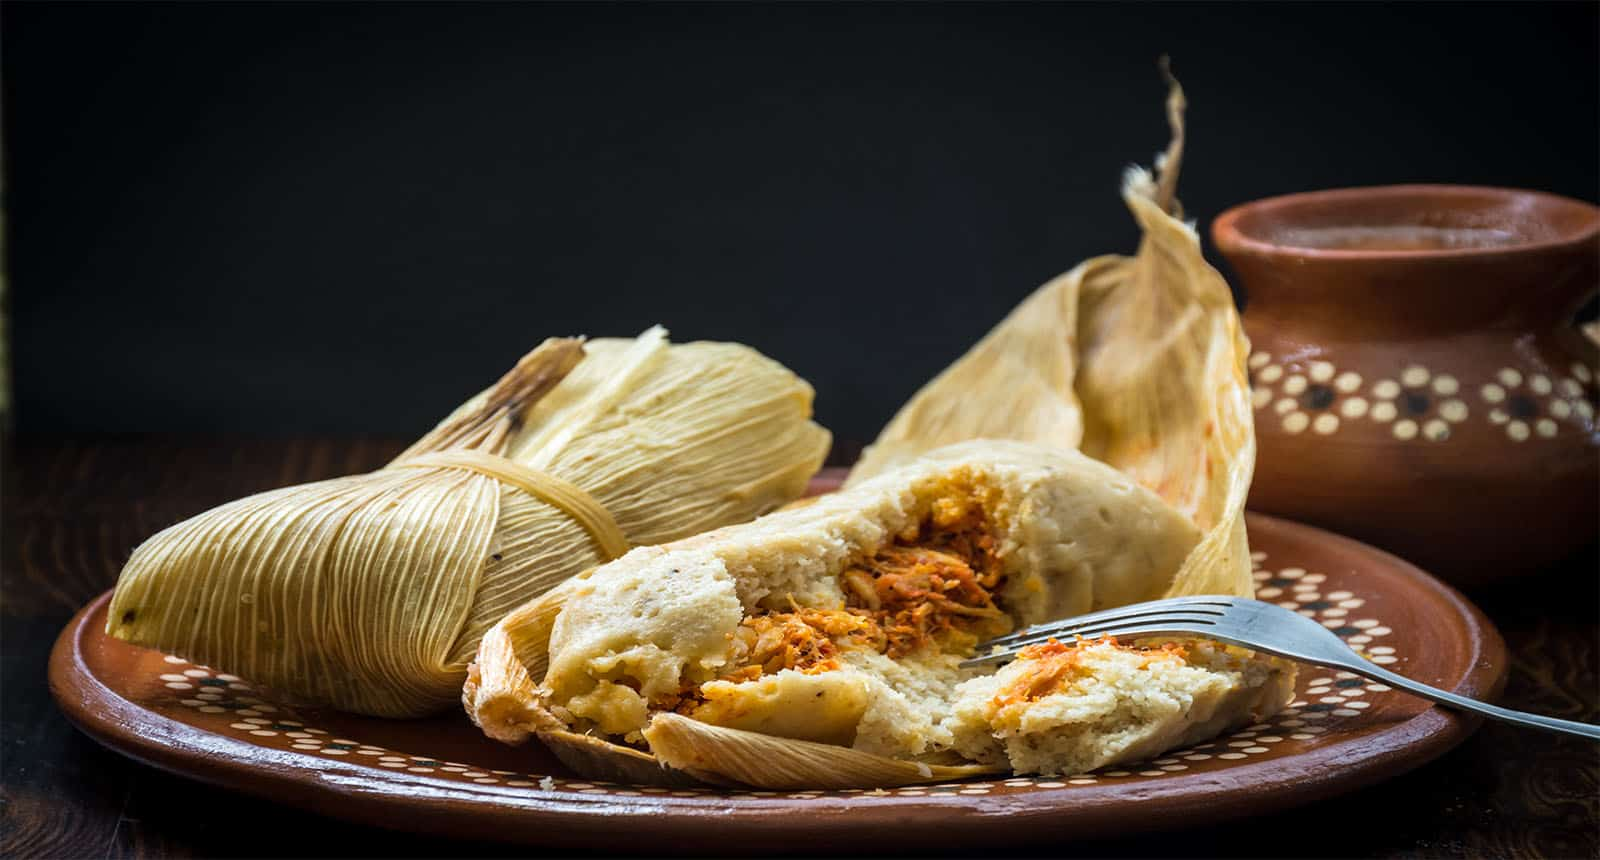 What To Serve With Tamales - Top 10 Side Dishes And 3 Sauces